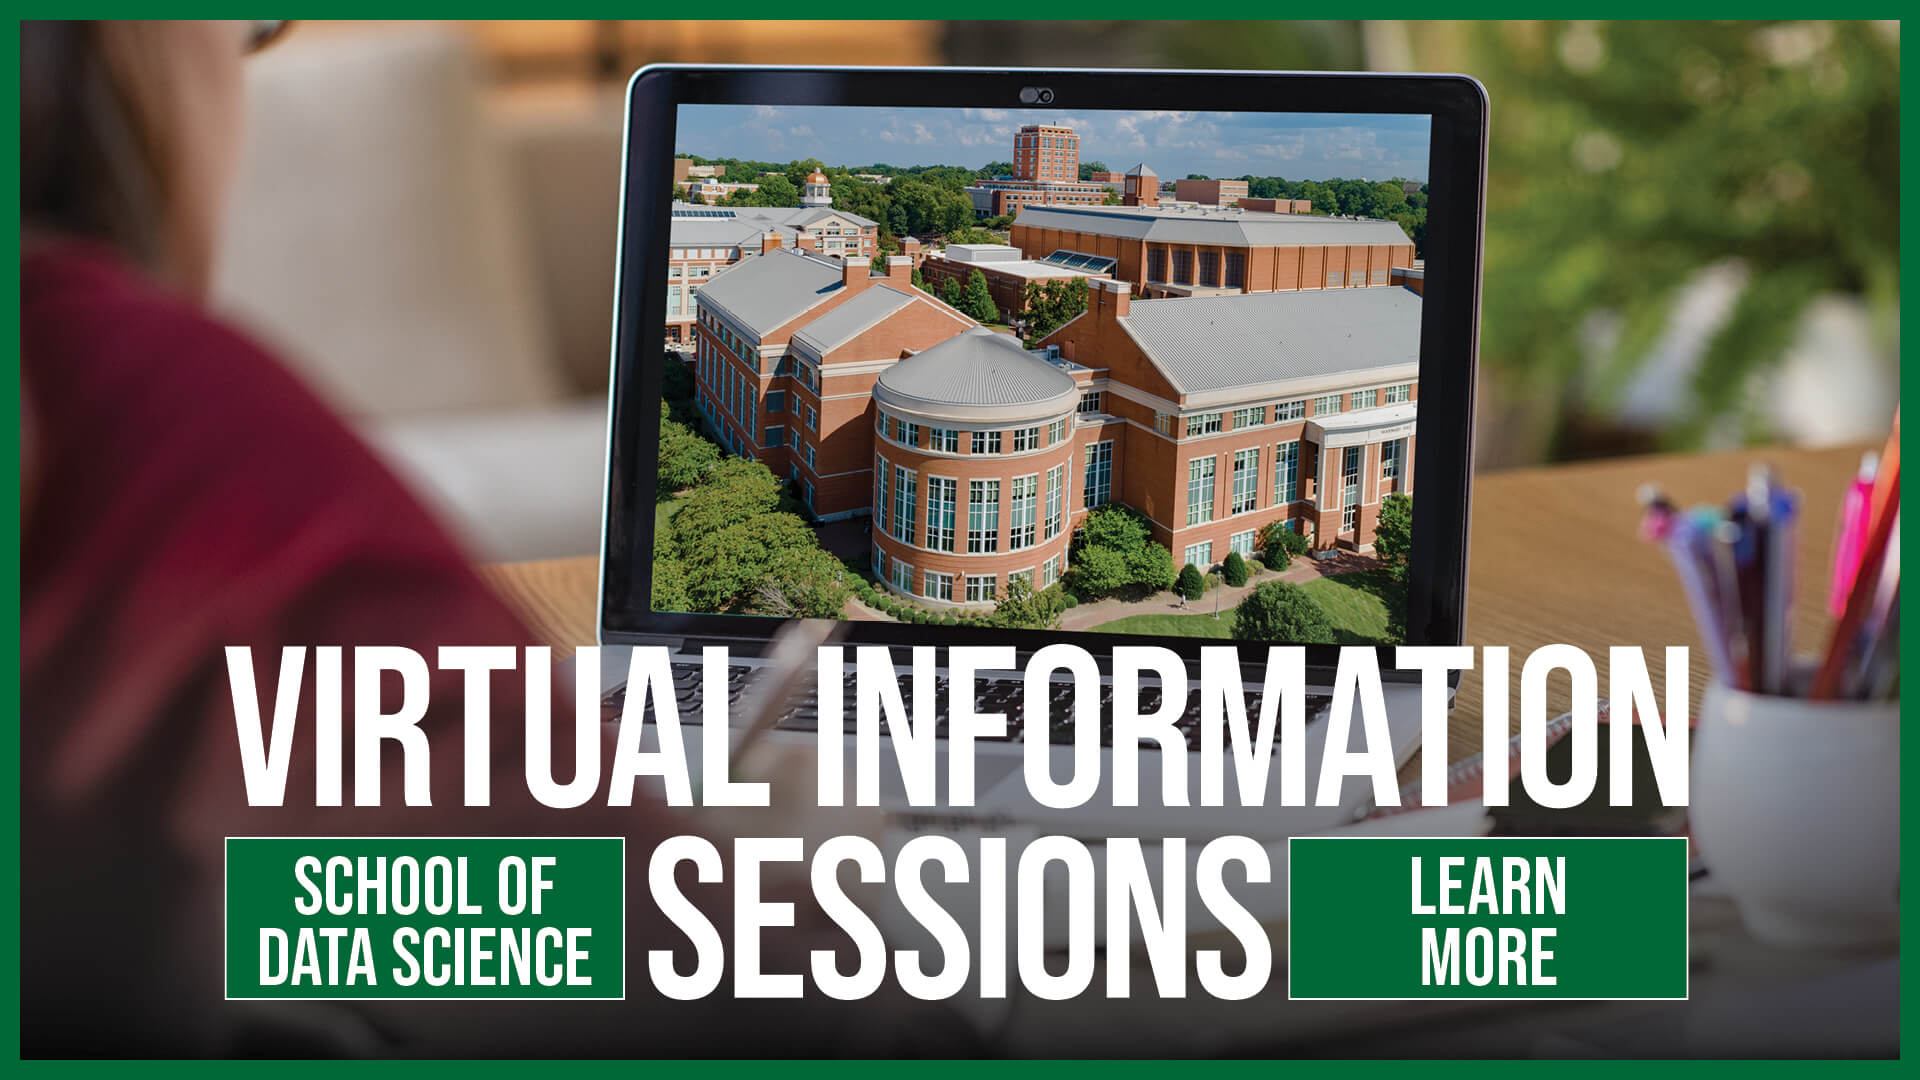 School of Data Science Information Sessions